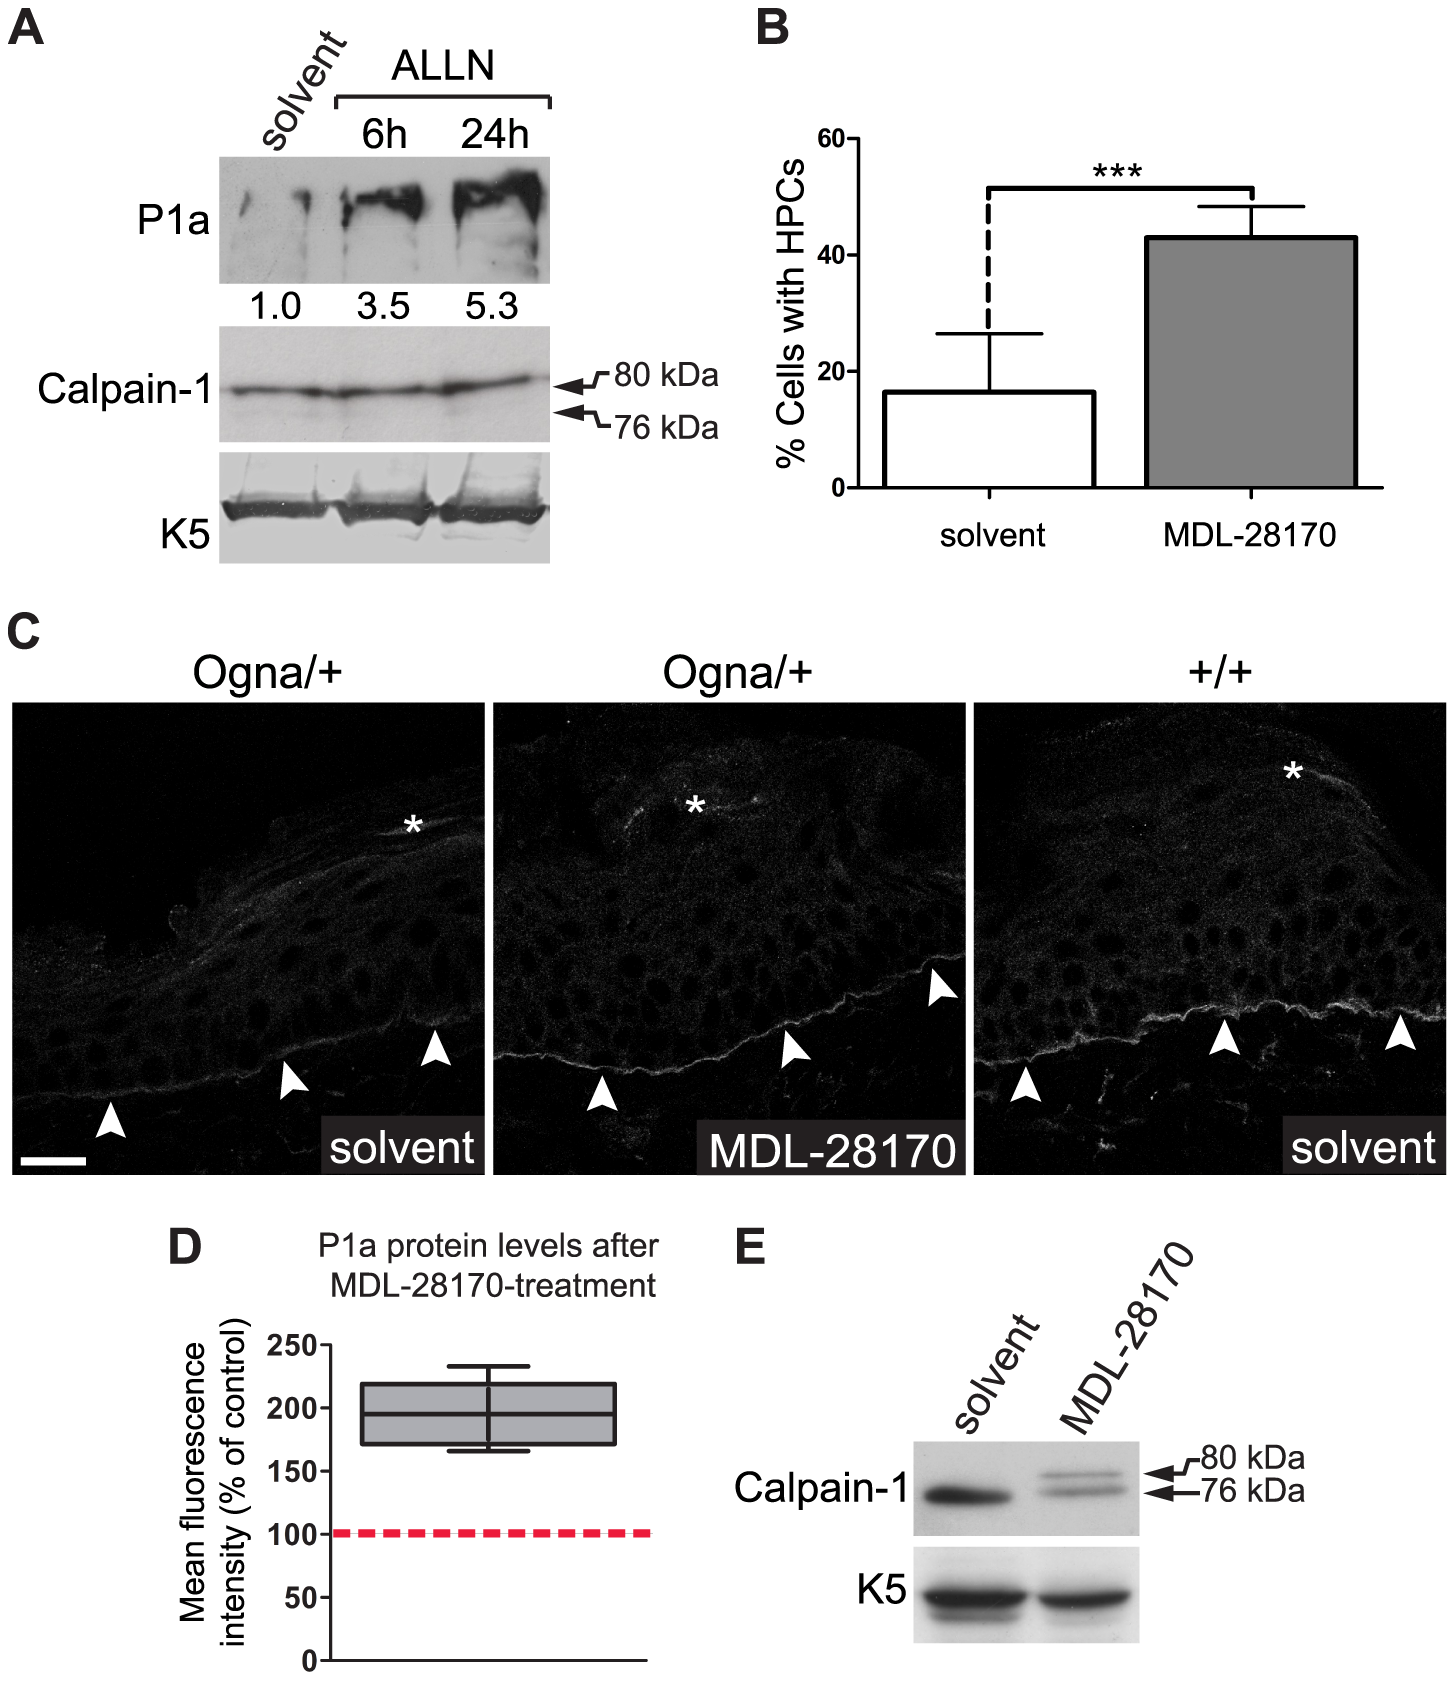 Calpain inhibitors restore P1a expression and HD formation in Ogna keratinocytes and Ogna mice.